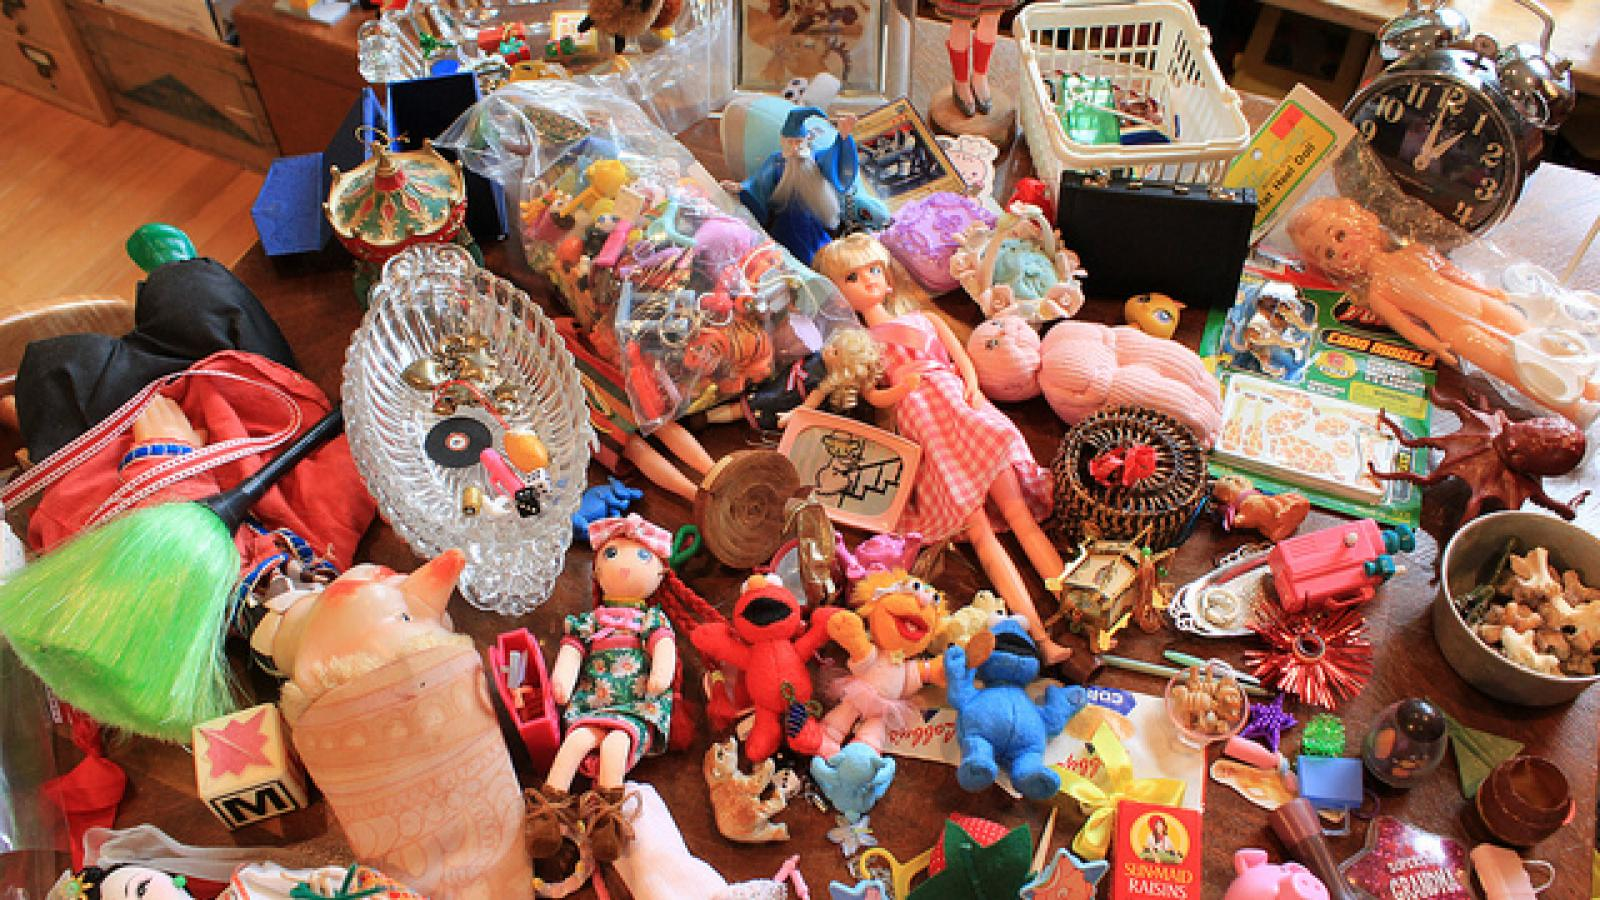 Where can I donate used/old toys in Qatar?